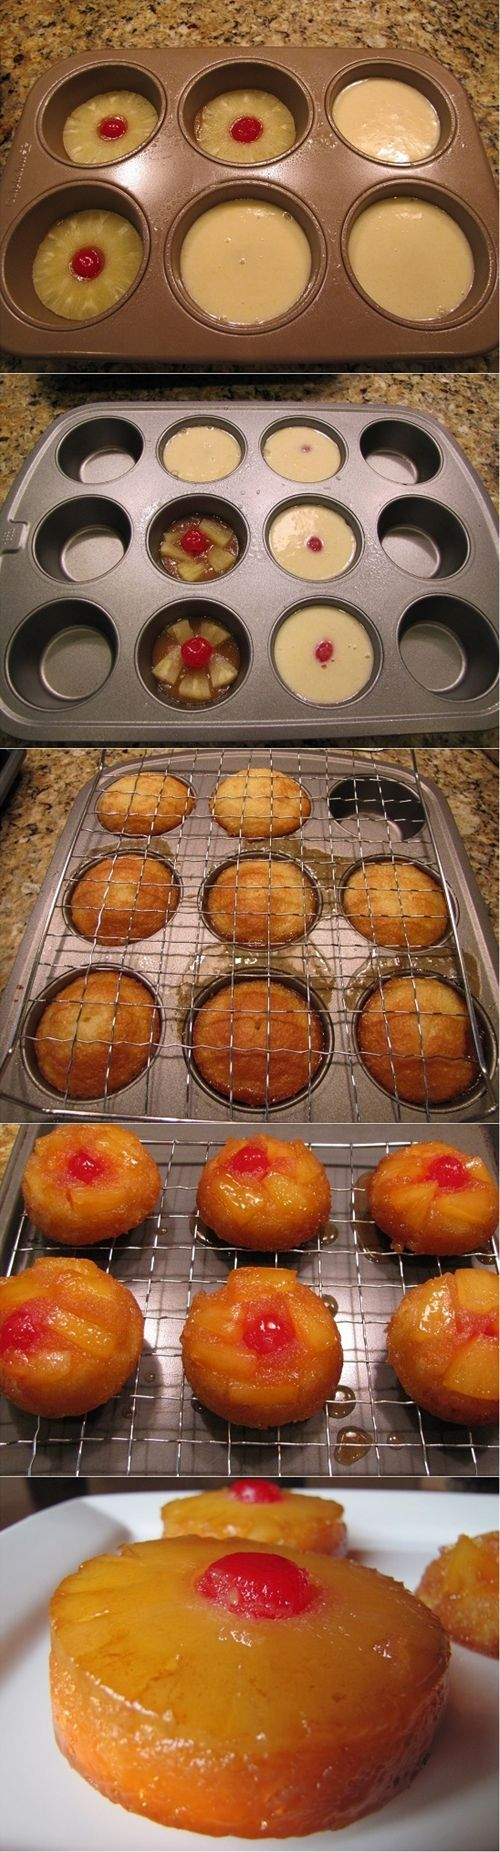 Ingredients: Cake Ingredients:  2 eggs 2/3 cup white sugar 4 Tbsp pineapple juice 2/3 cup all purpose flour 1 tsp baking powder ¼ tsp salt Topping:  ¼ cup butter (